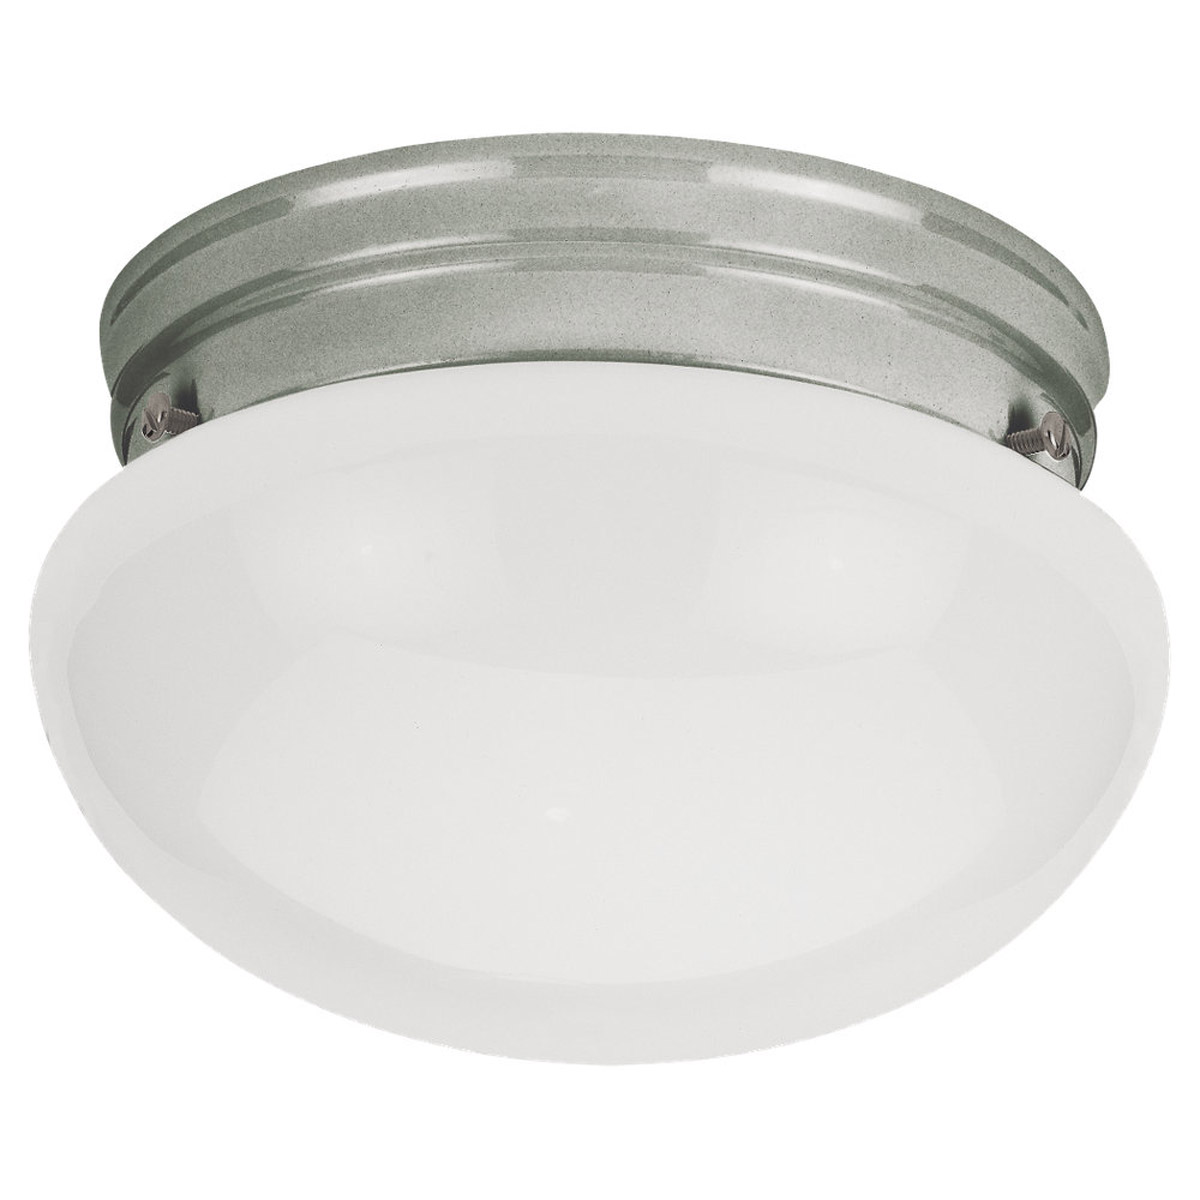 Sea Gull Lighting Webster 1 Light Flush Mount in Brushed Nickel 5326-962